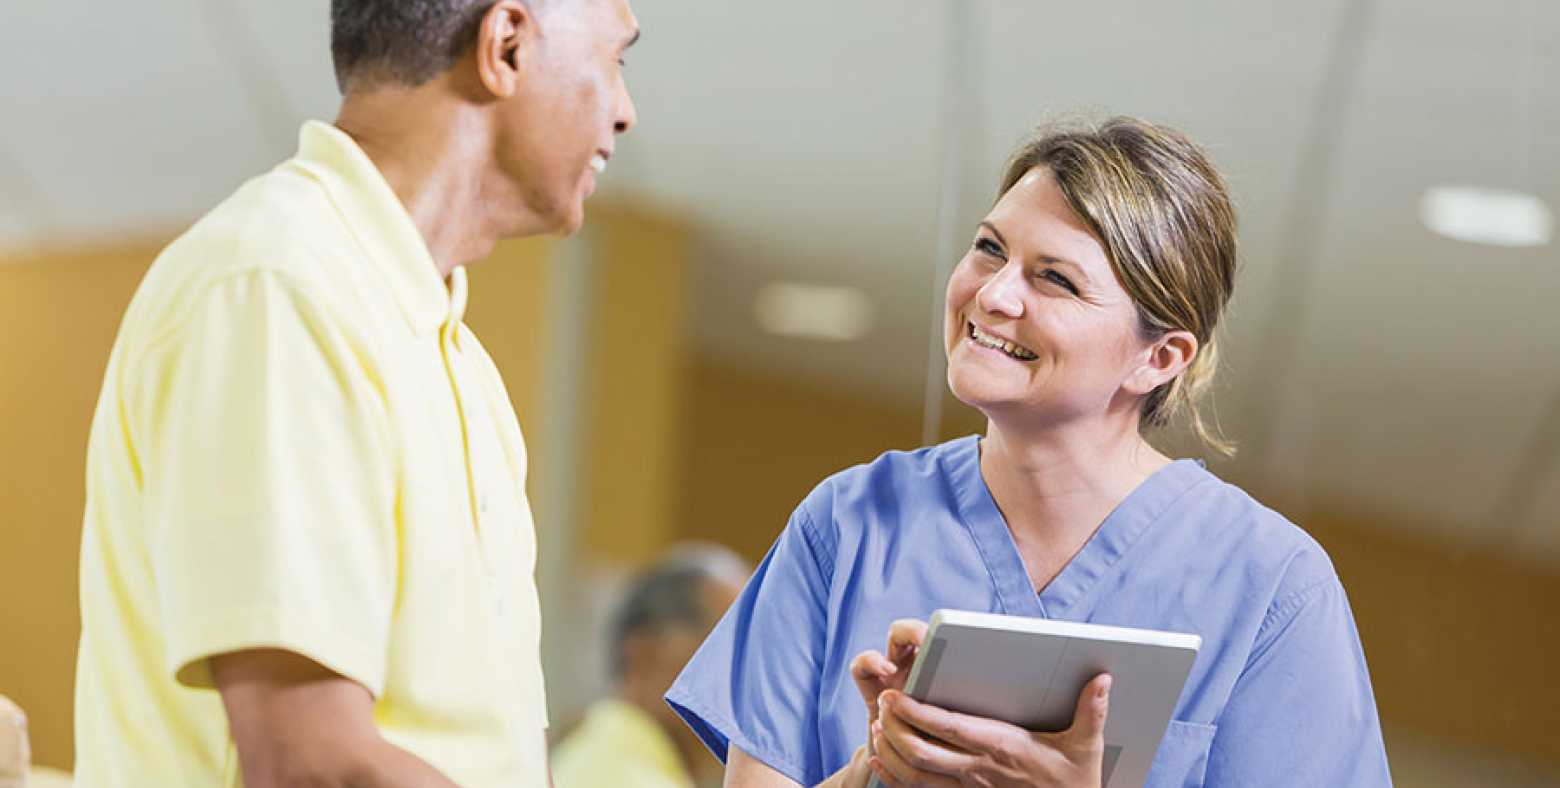 A female nurse speaking with a patient